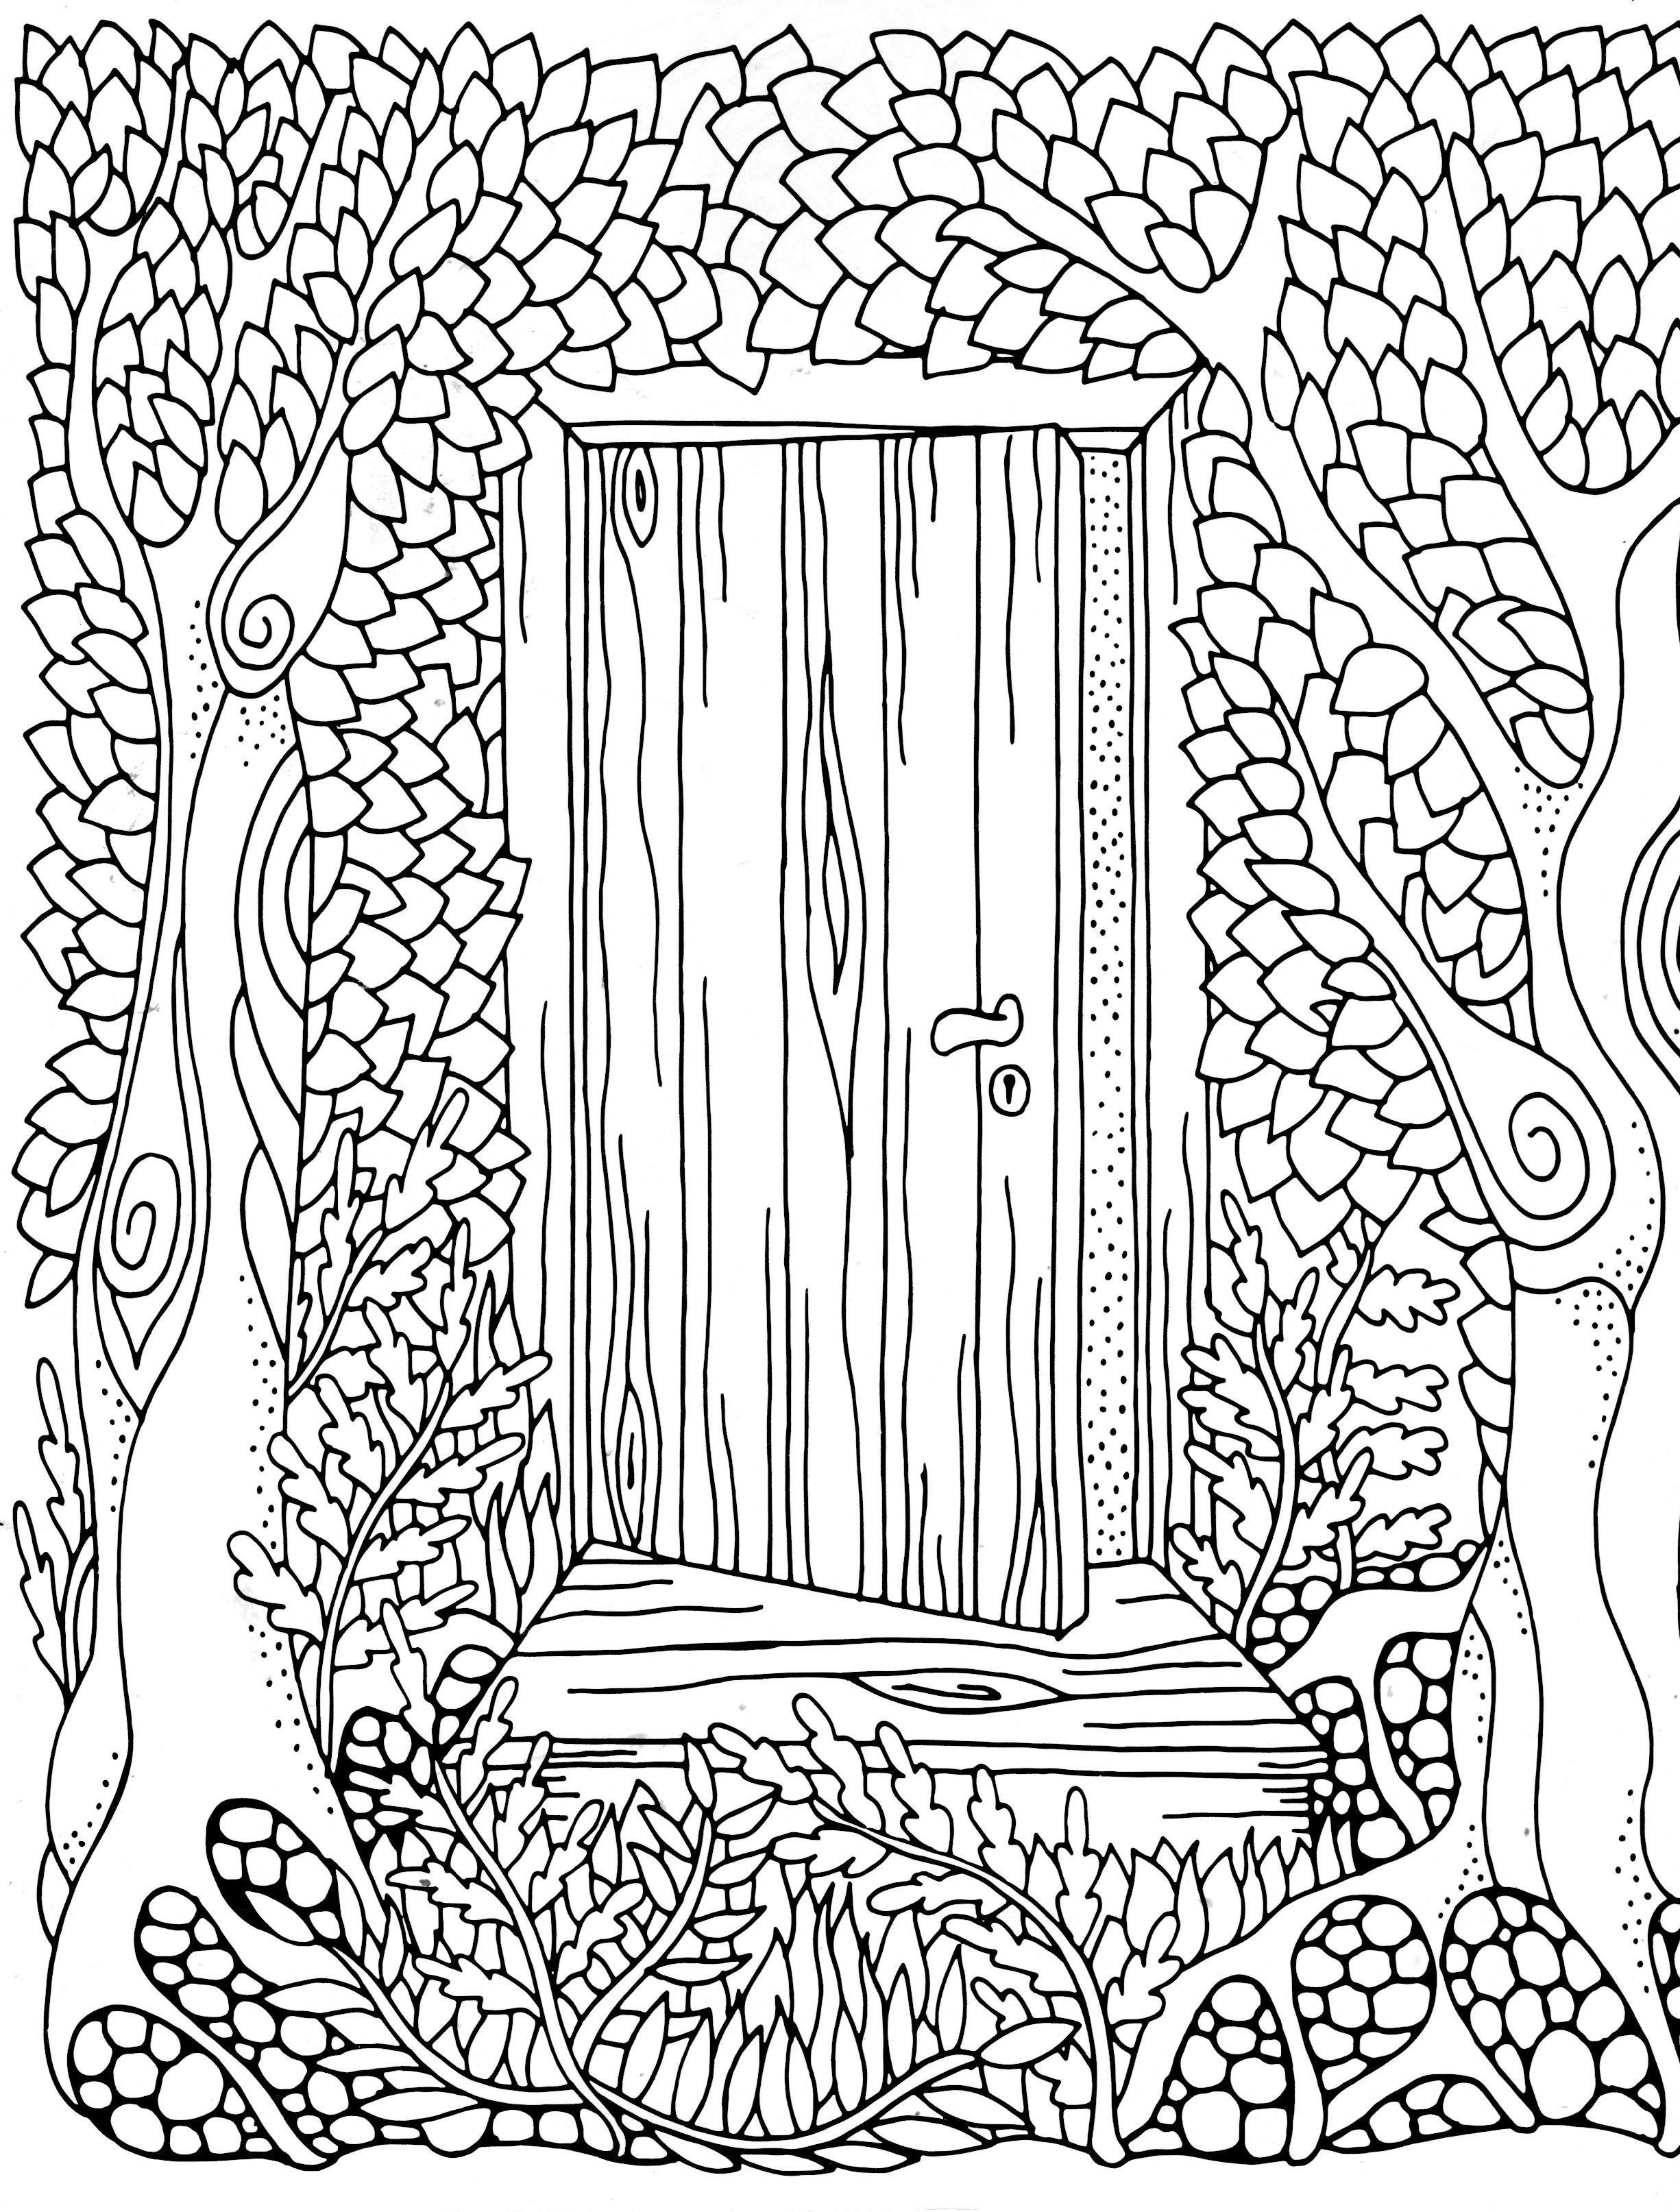 Forest door coloring page Adult Colouring Trees Leaves